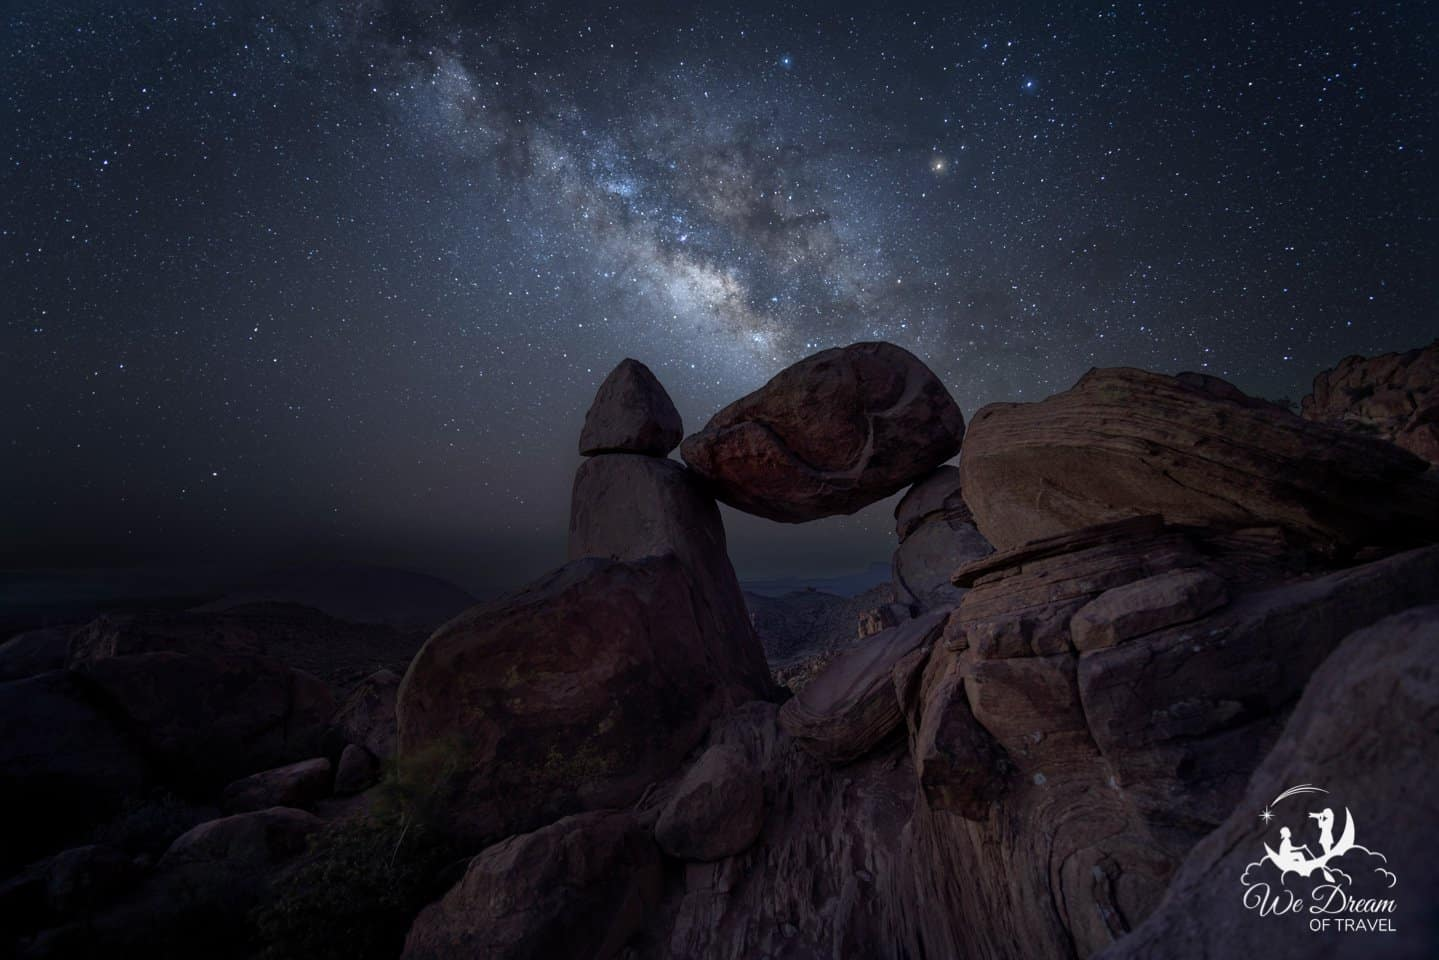 Balanced Rock is the most iconic spot for Milky Way pictures in Big Bend.